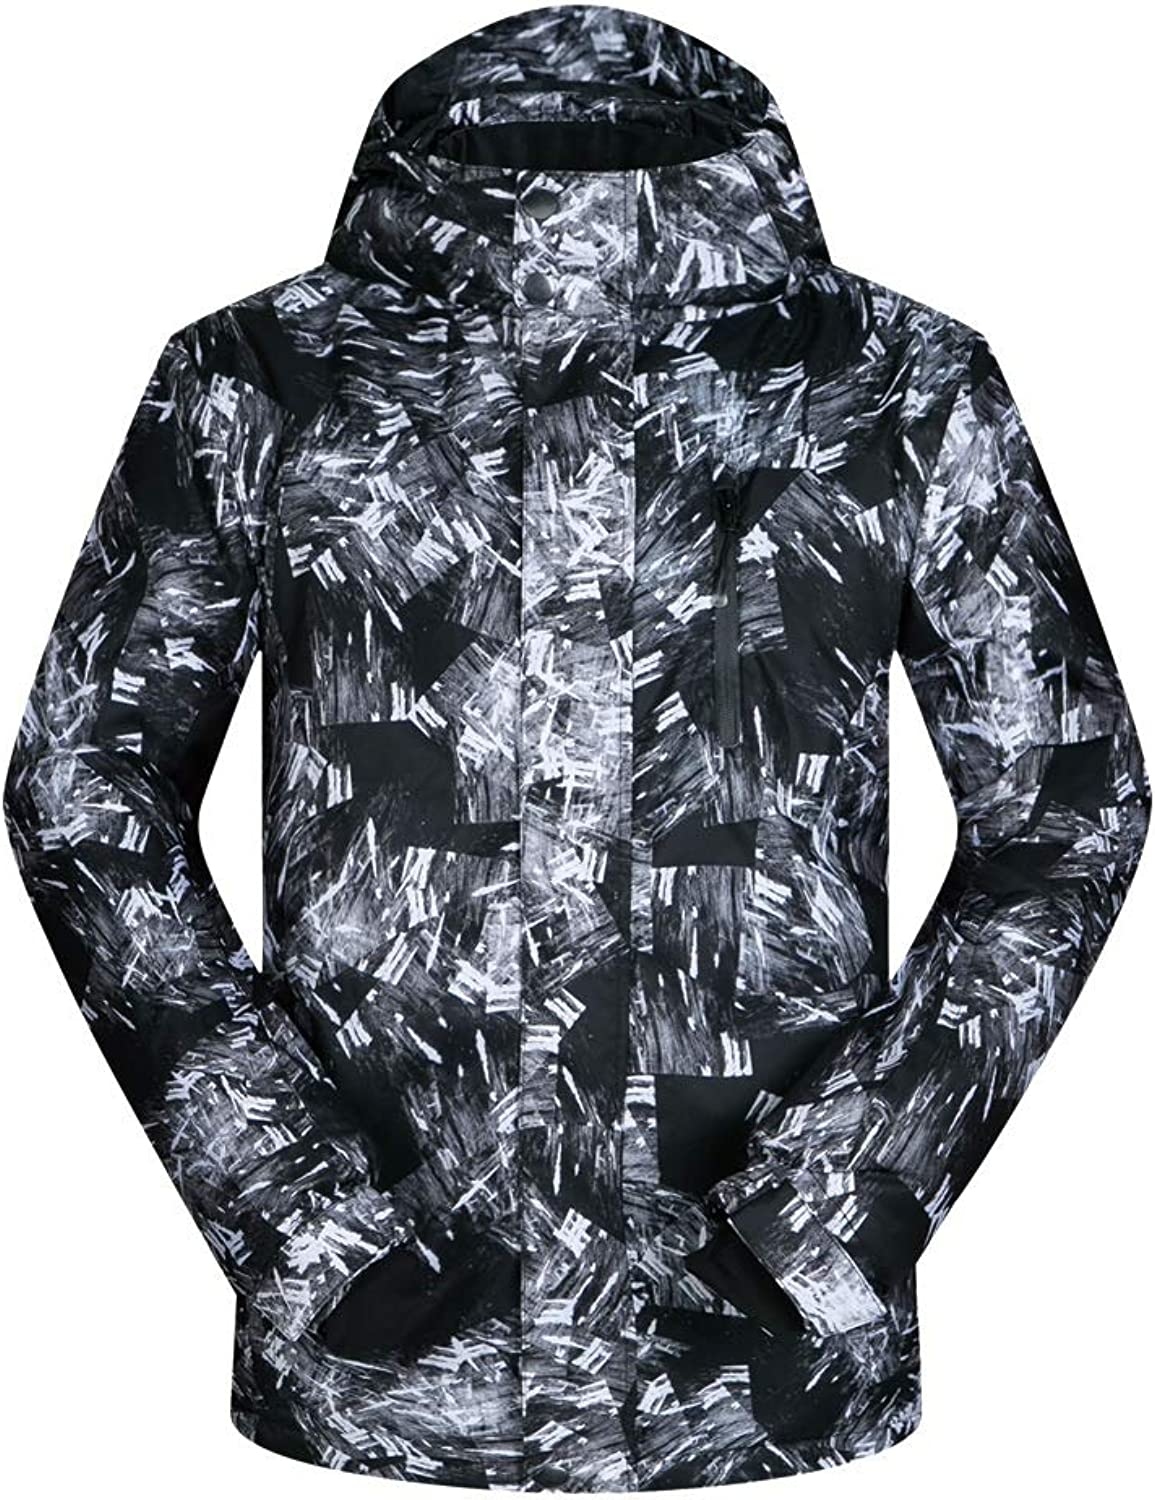 Warm Winter Coat Breathable Adjustable Hood & Cuffs Waterproof Jacket  for Cold Weather,Comfortable and Warm